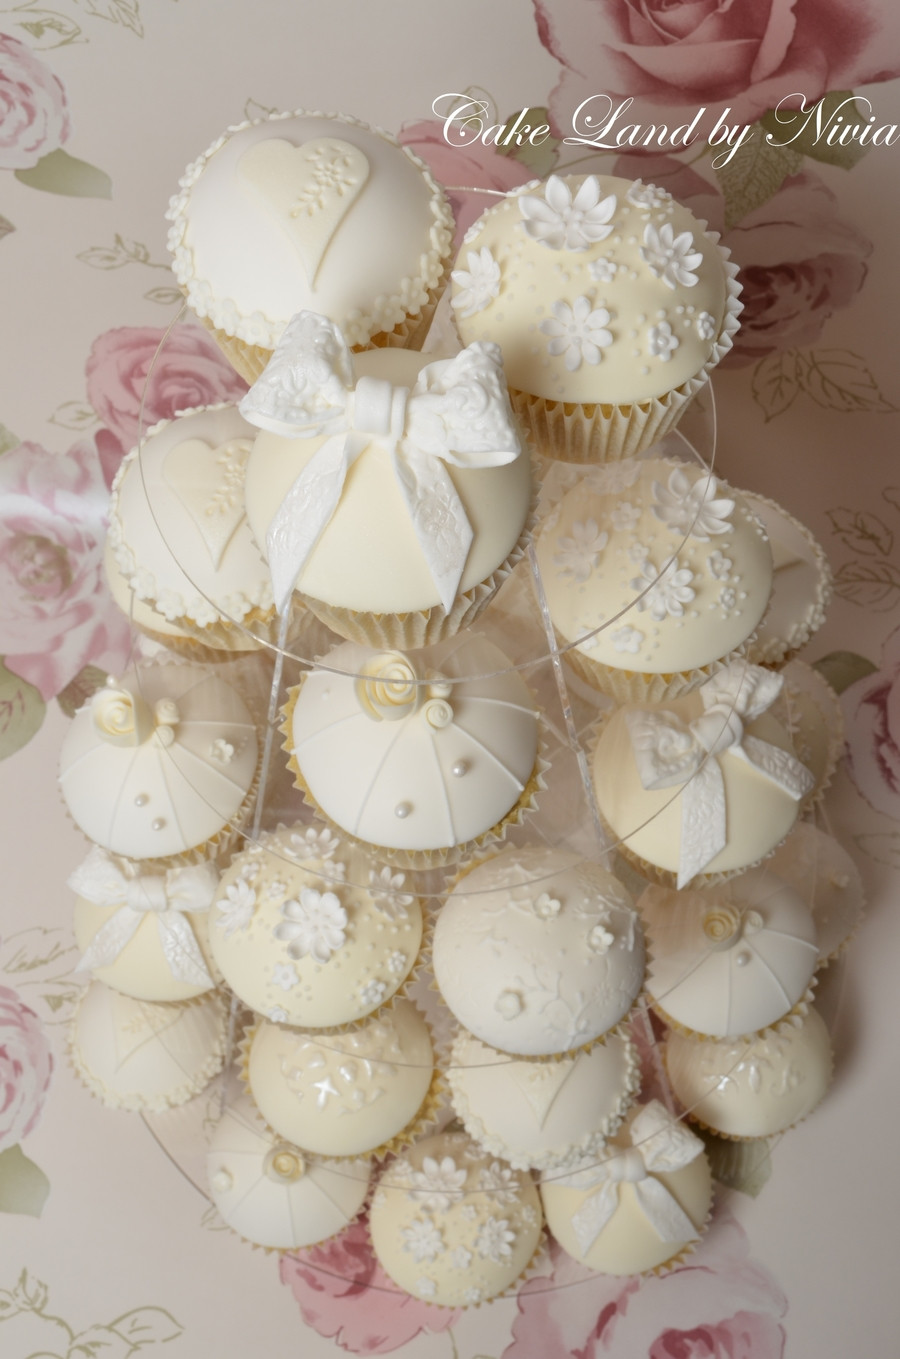 White Wedding Cake Cupcakes  White And Ivory Wedding Cupcakes CakeCentral